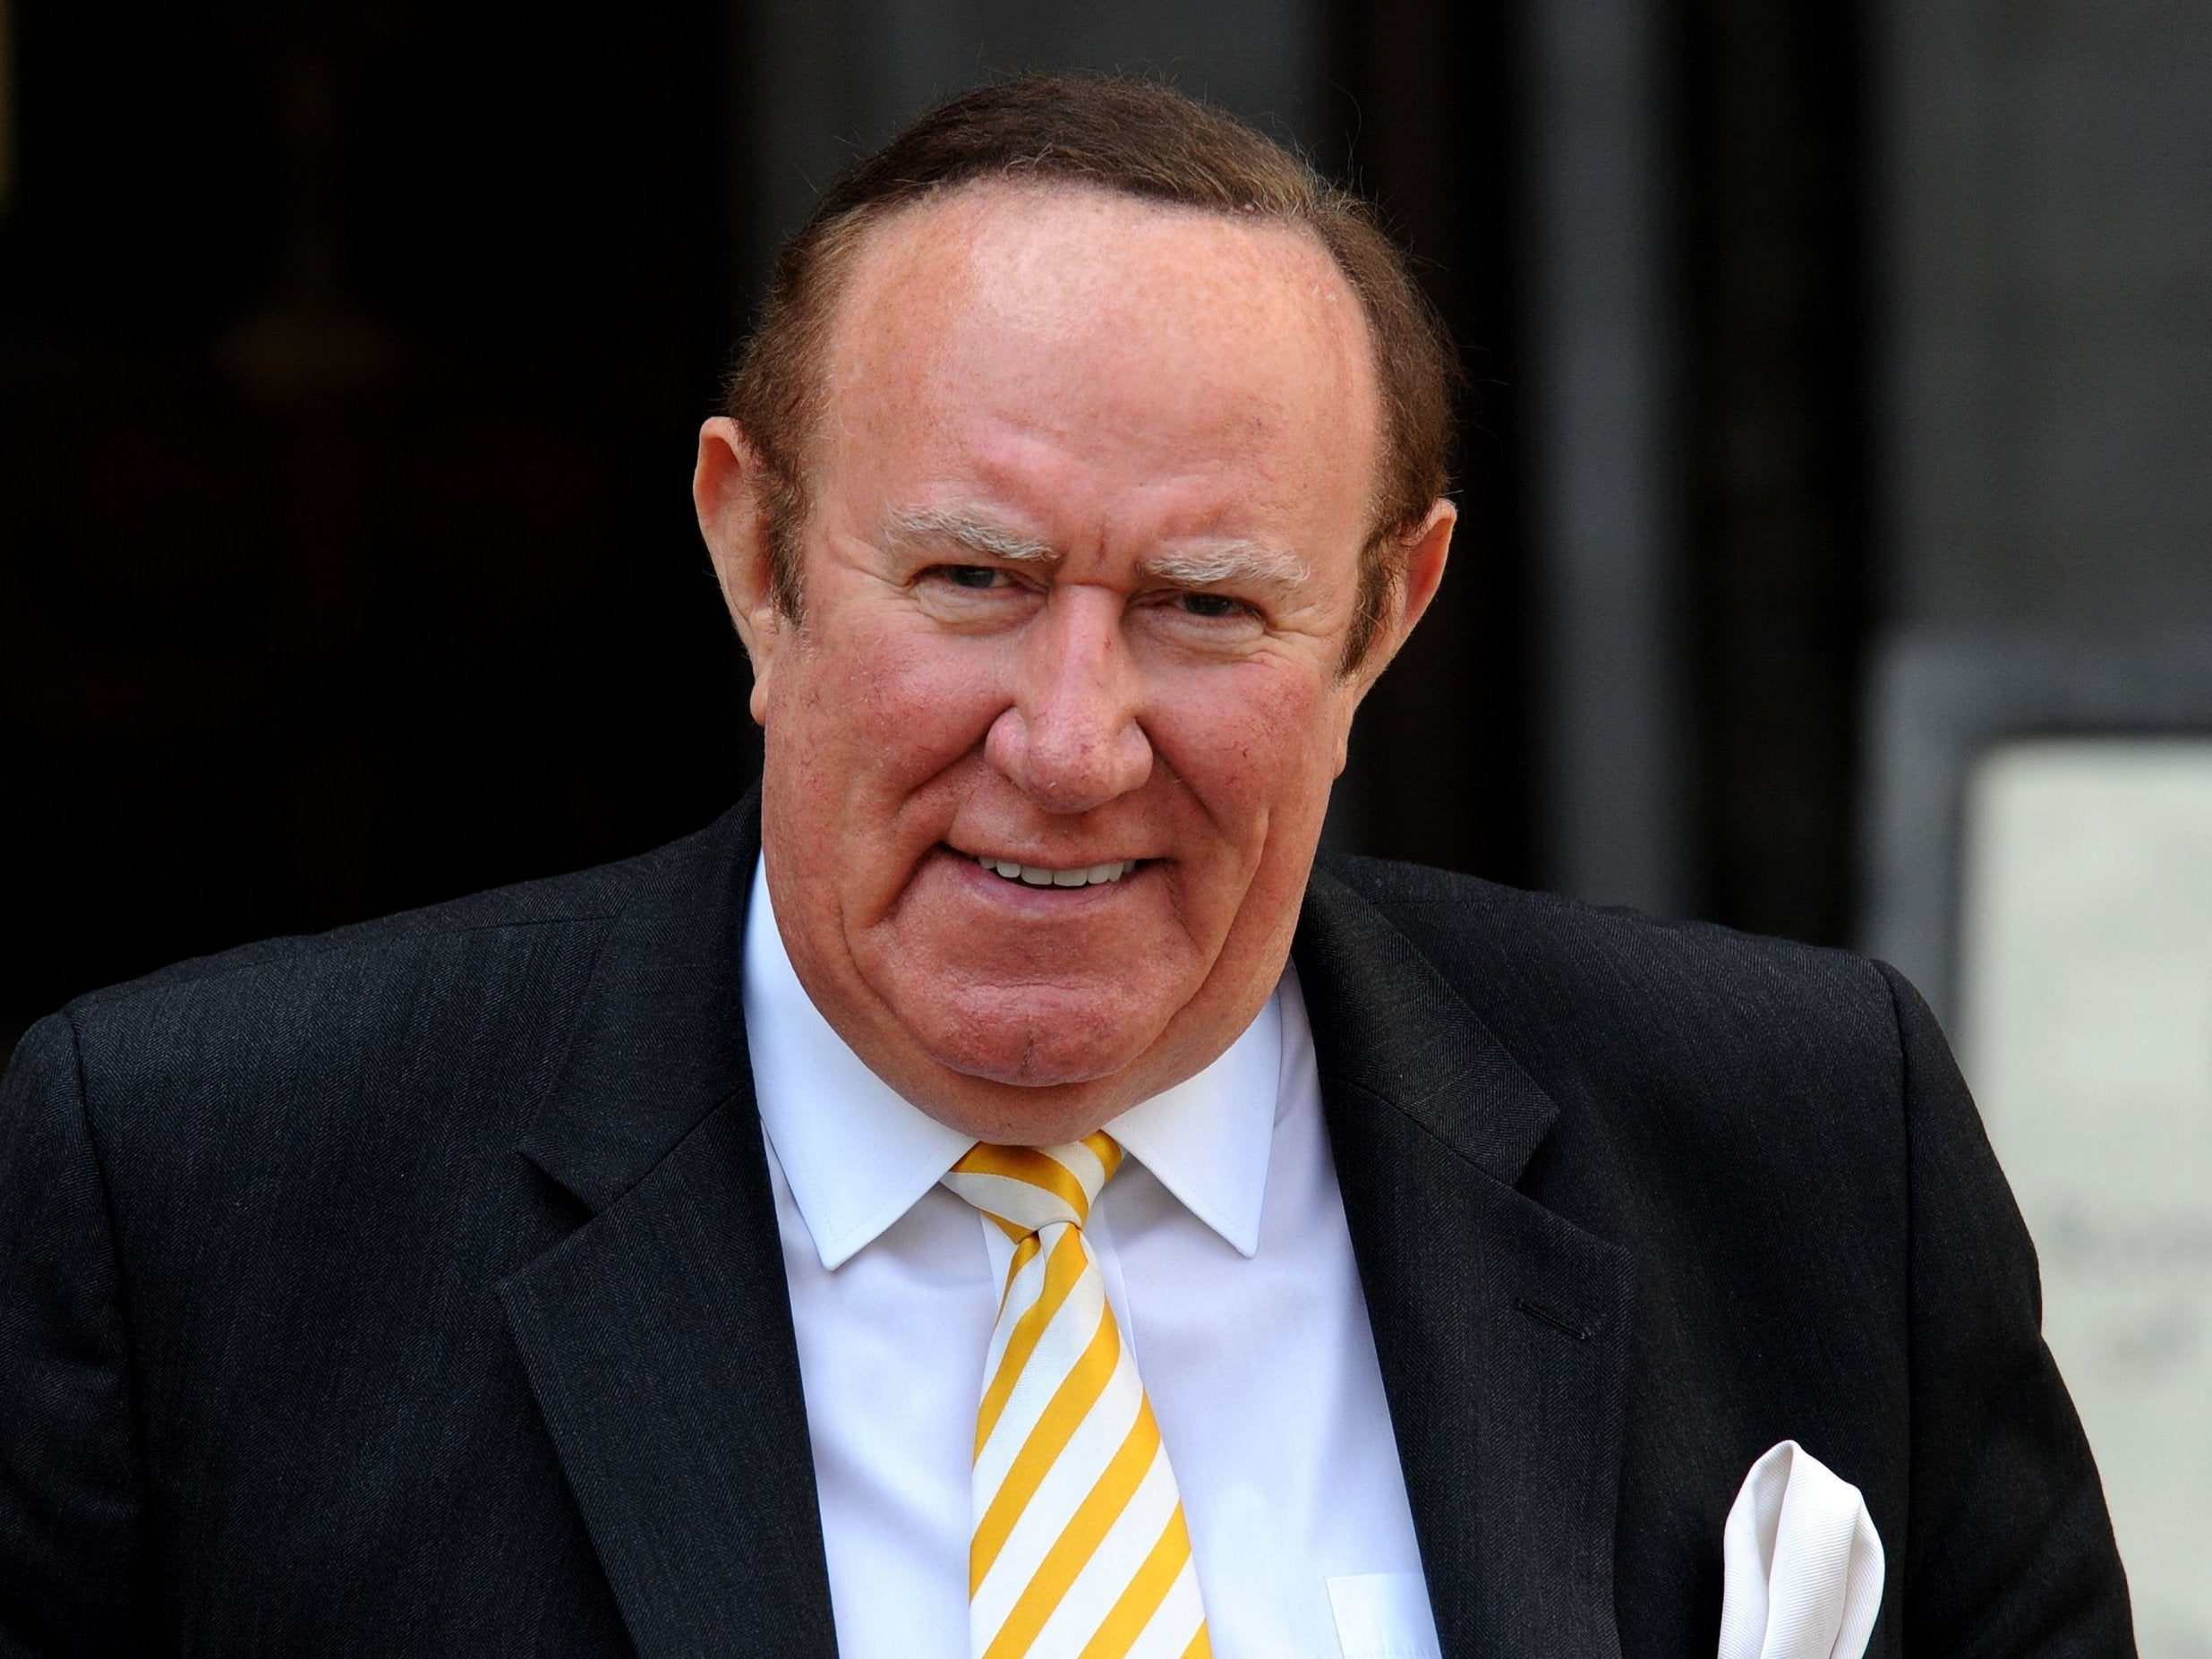 Trump didn't think he'd win election and only ran so he'd make more money than Bill Clinton, Andrew Neil claims - independent